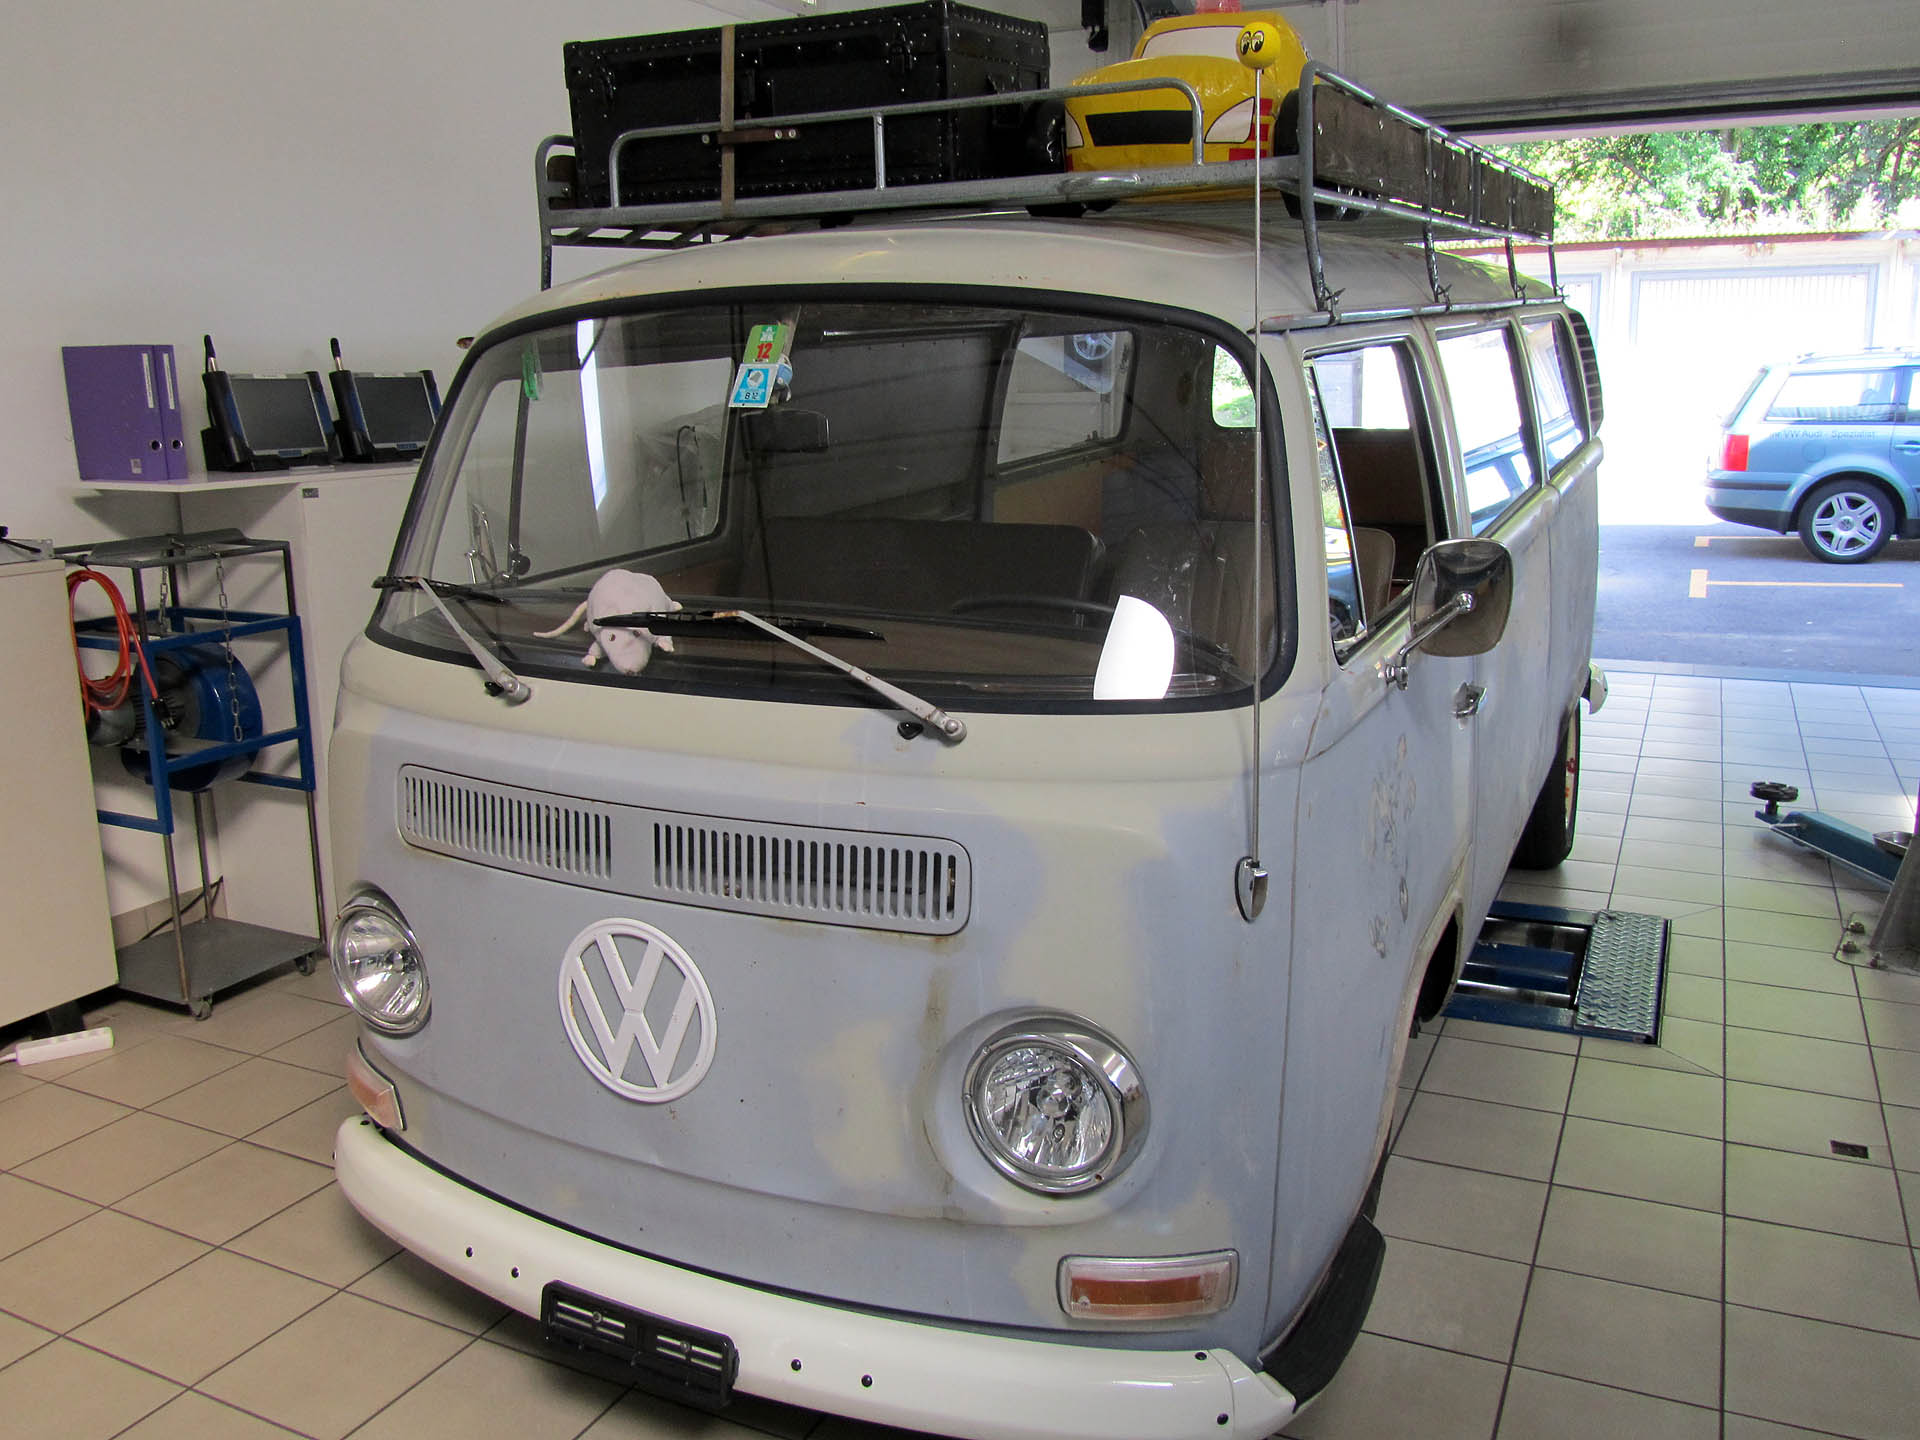 VW Bus Typ 1, 2.4 Lt, 125 Ps / 205 Nm